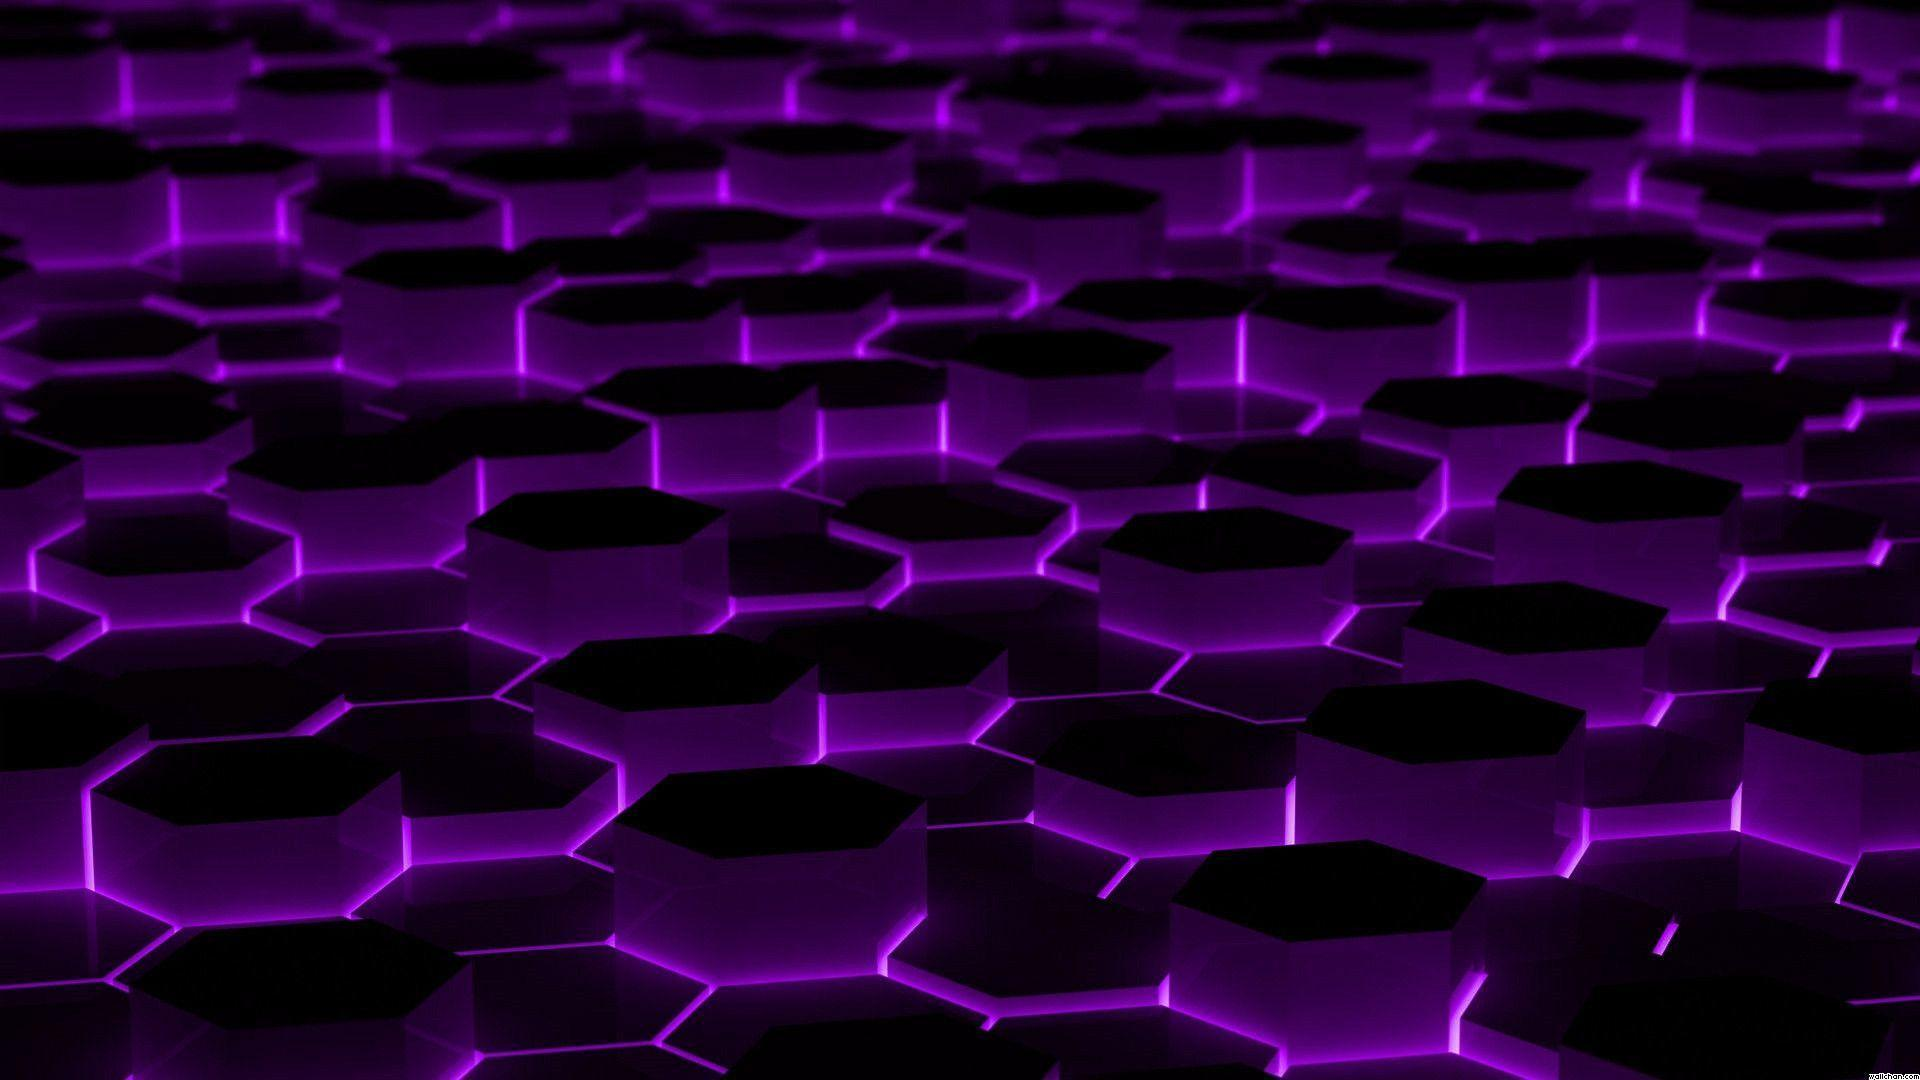 6000+ Wallpaper Hd Black Purple  Terbaik